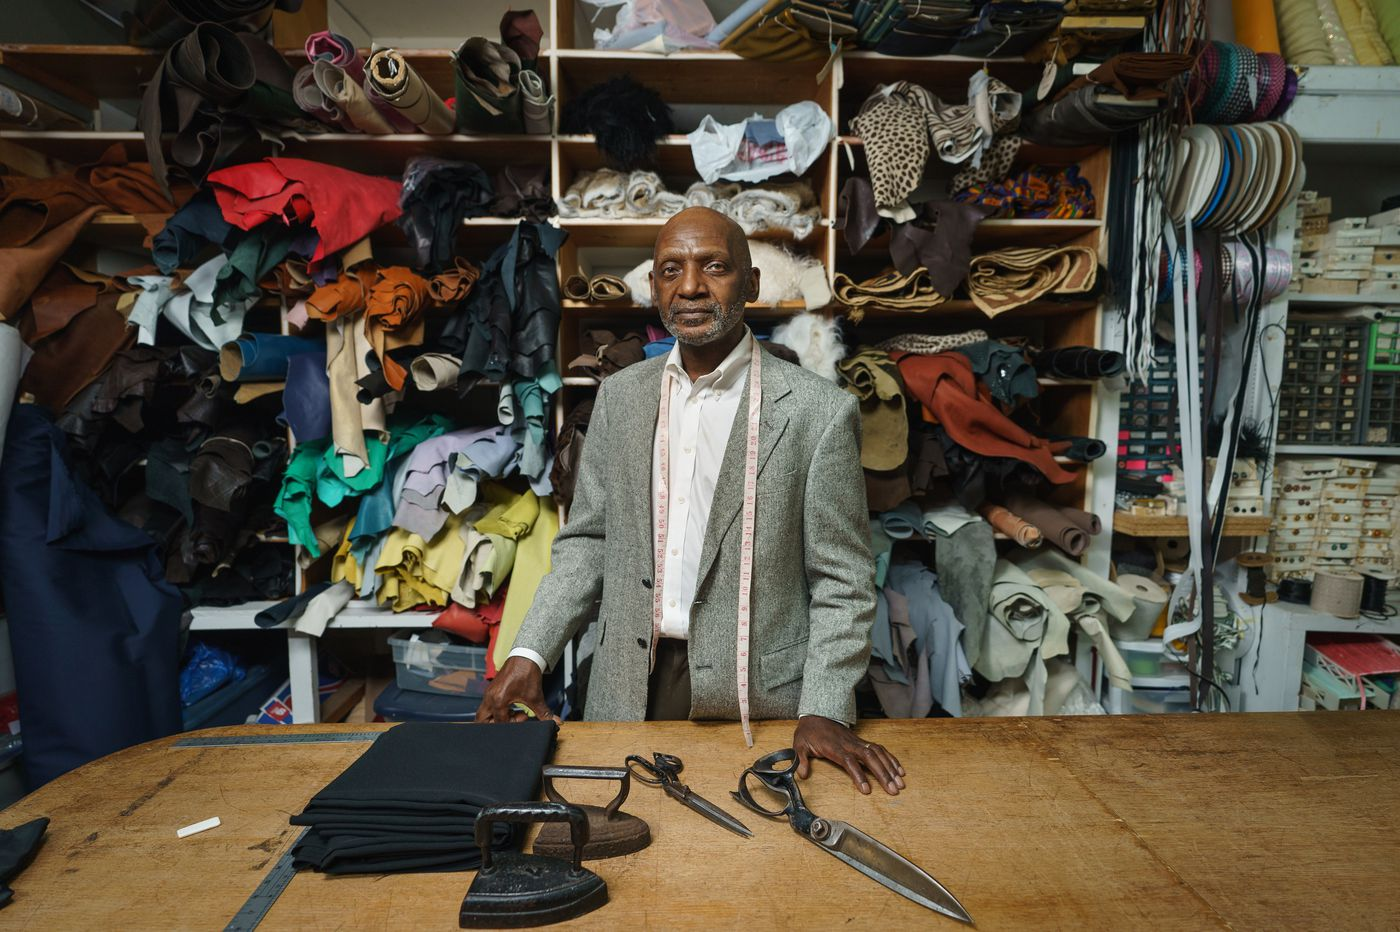 His Philly tailoring shop was looted during the uprising. More than $30,000 was donated for repairs.